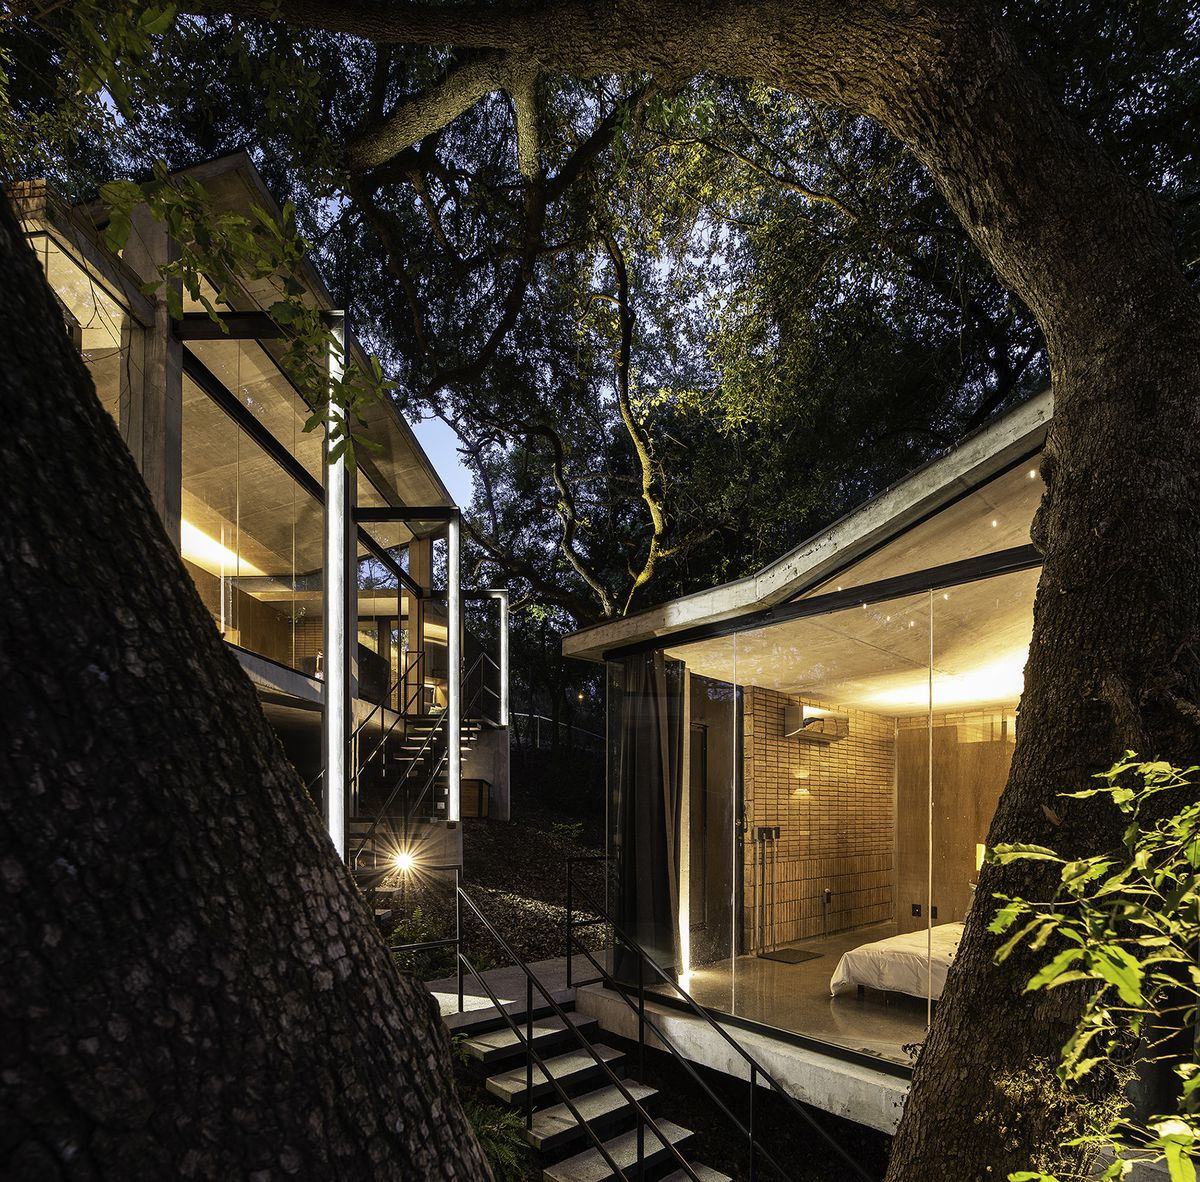 Modern house lit up at night. The buildings are treehouse style, with big glass windows and a metal staircase in between.